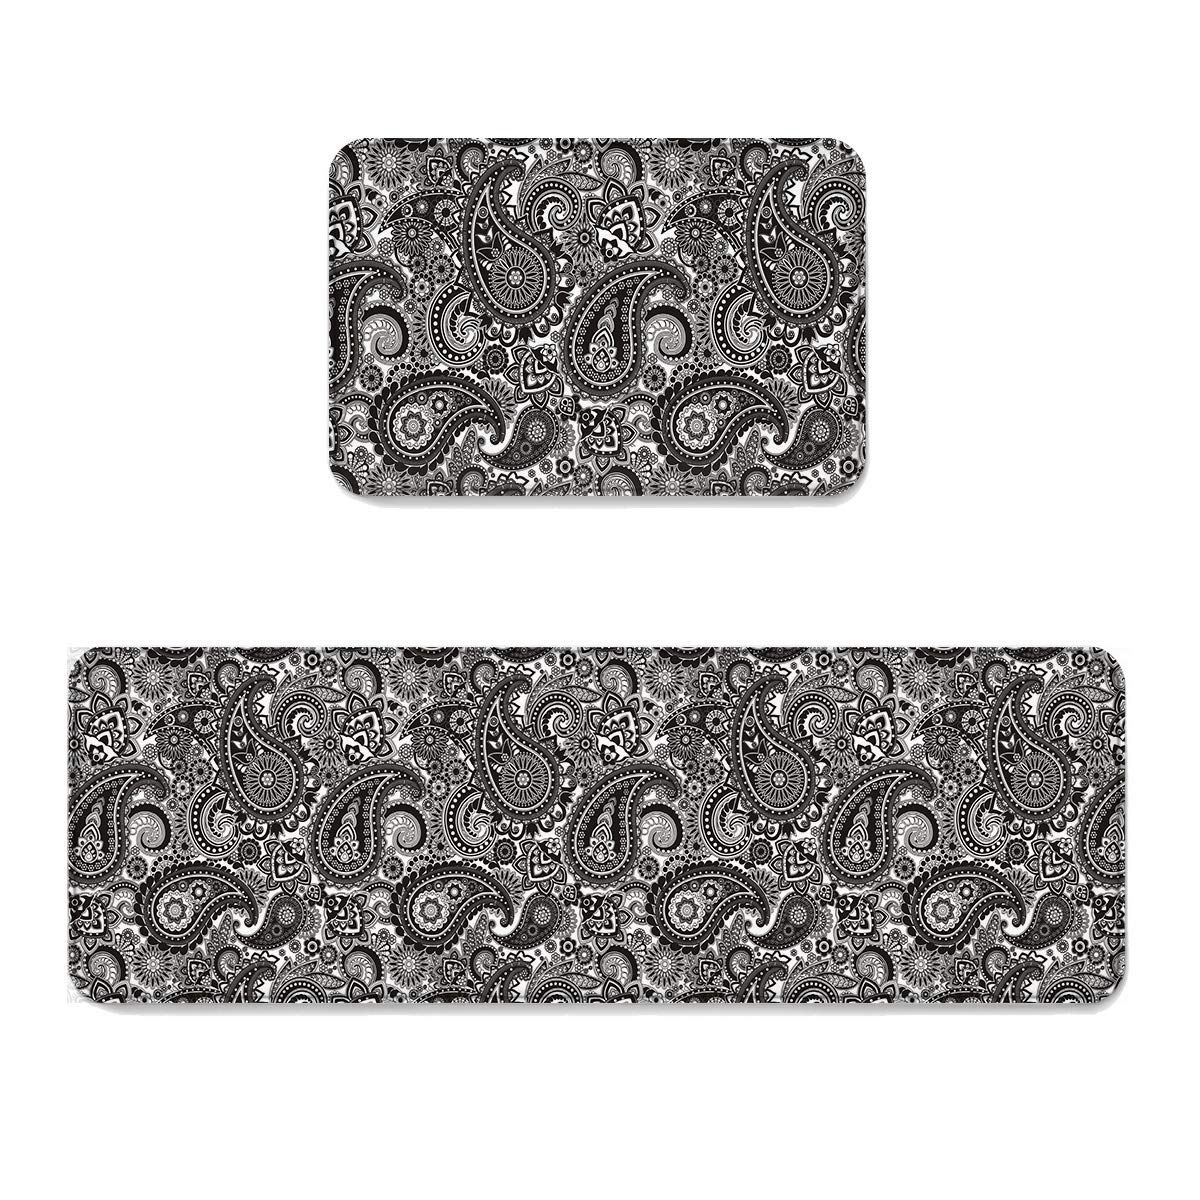 Beauty Decor Abstract 2 Piece Non-Slip Kitchen Mat Runner Rug Set Doormat Area Rugs Floral Paisley Pattern Ethnic Design Black White 23.6x35.4inch+23.6x70.9inch